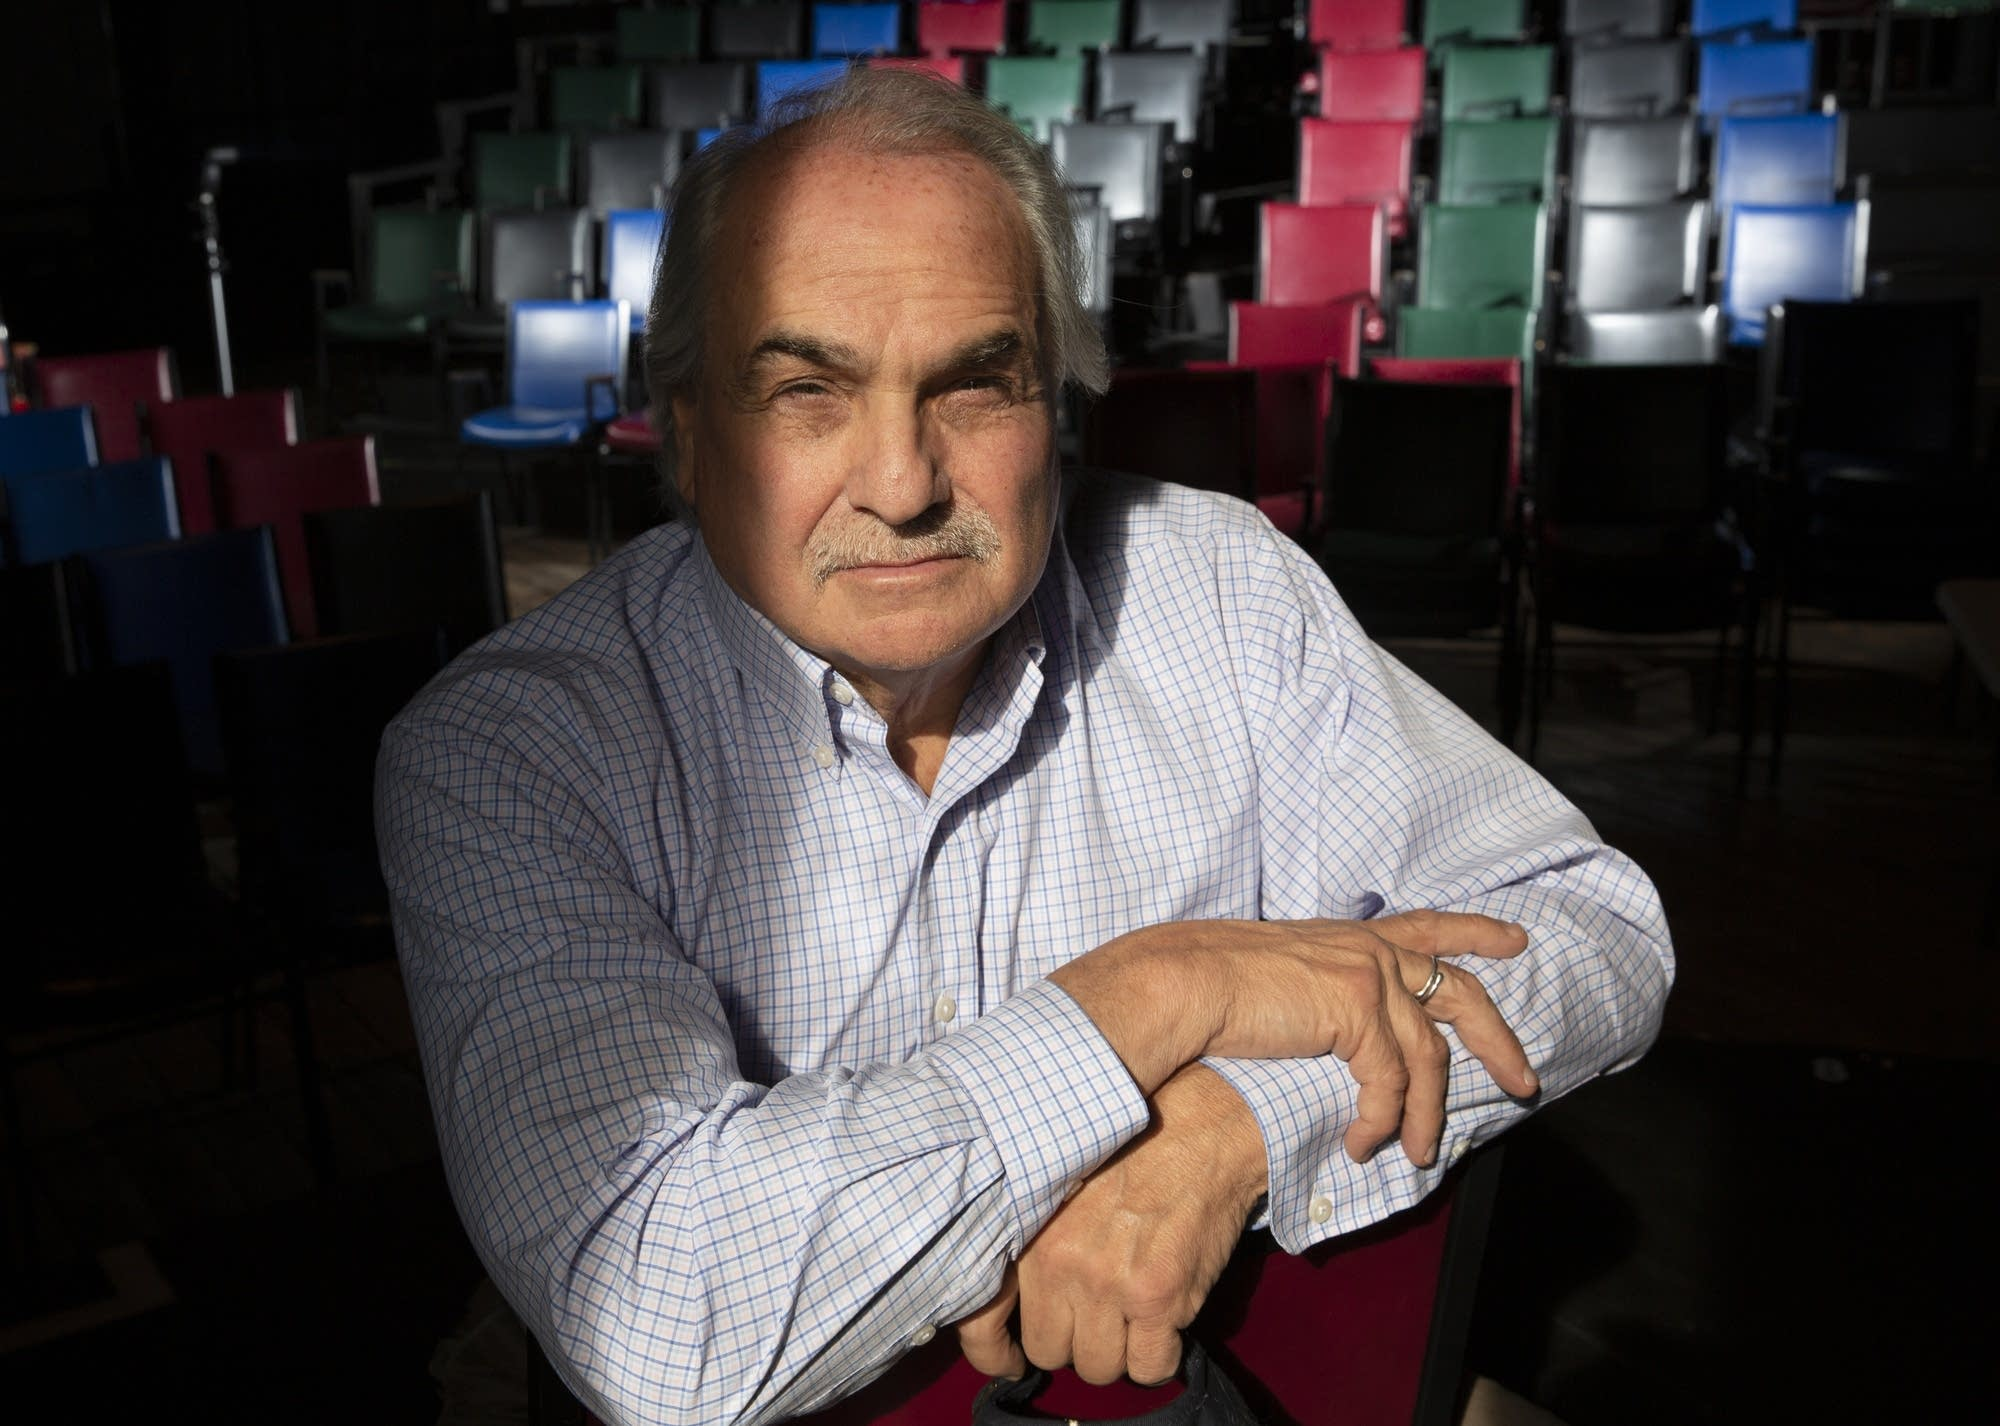 Jack Reuler founded Mixed Blood Theatre more than 40 years ago.